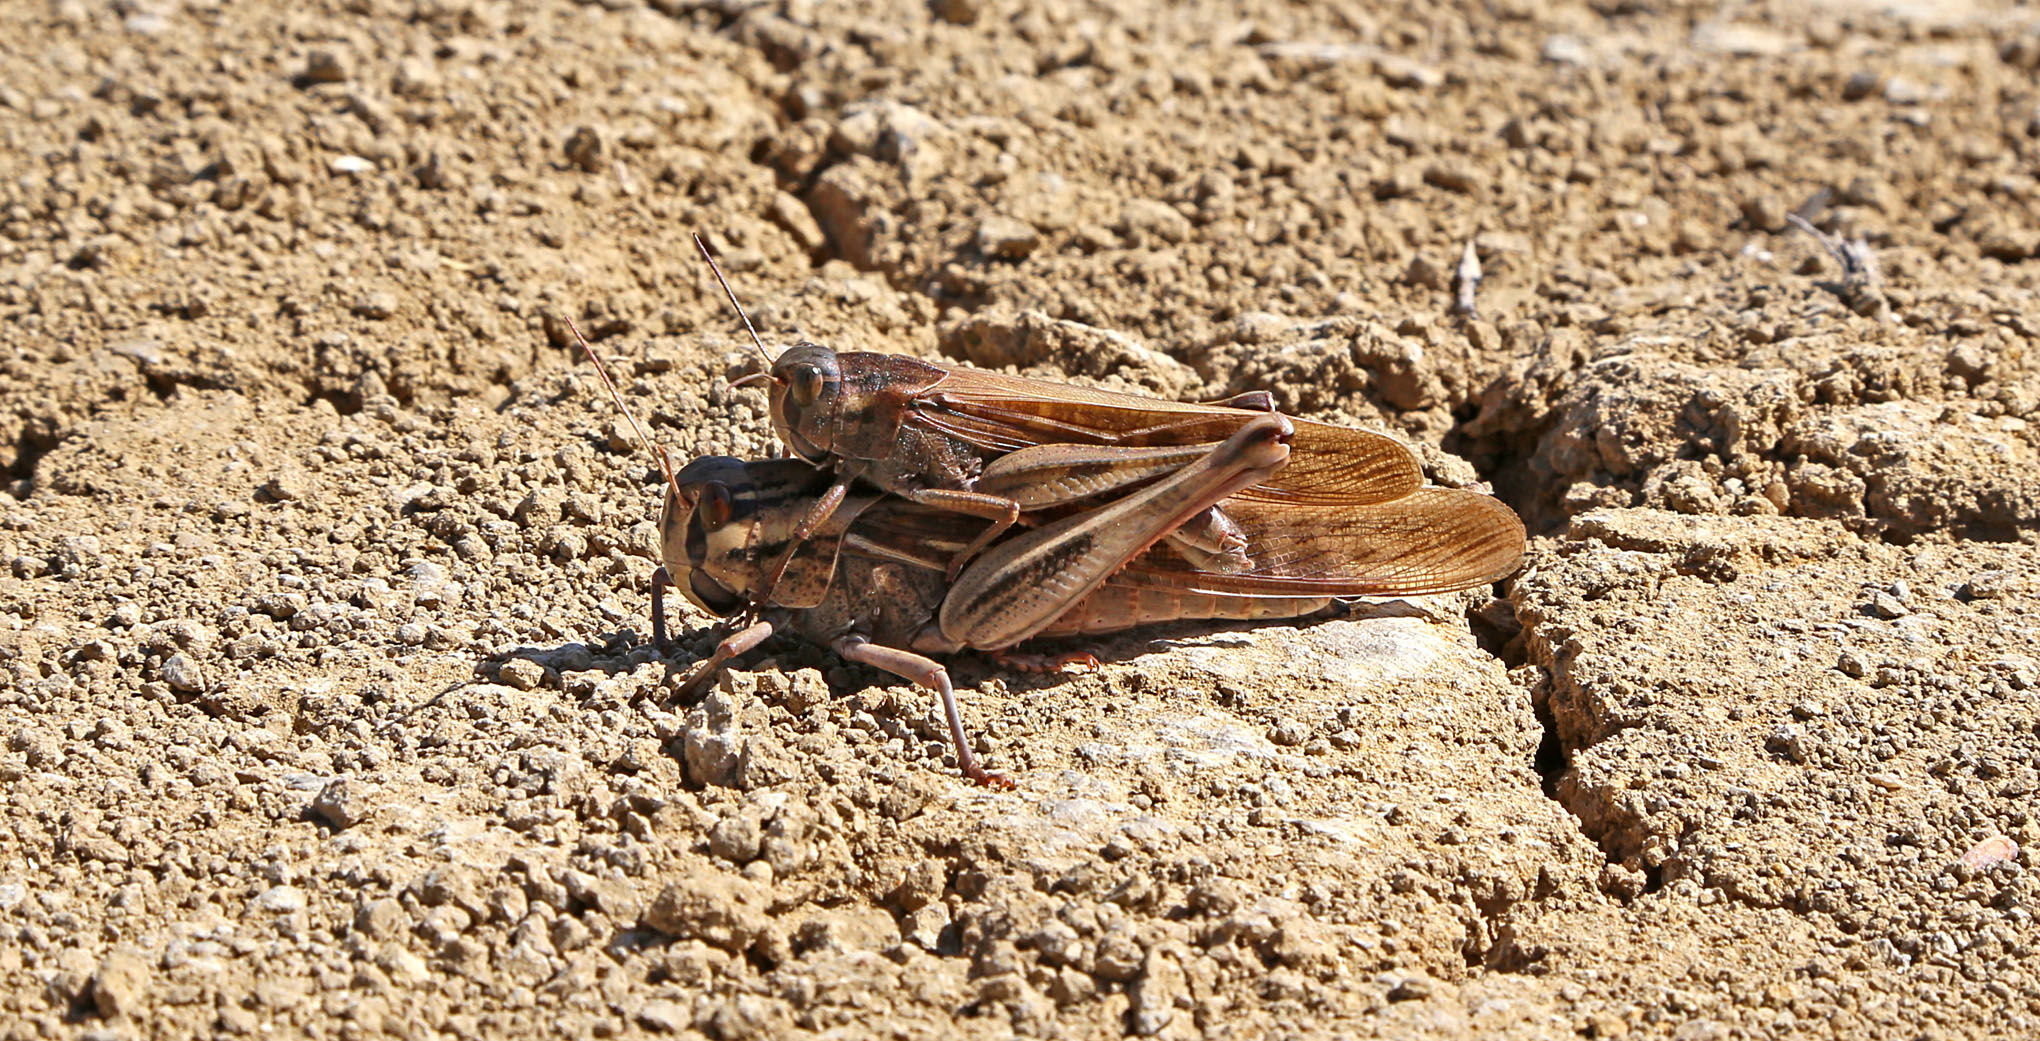 Orthoptera - 3 GrasshopperSex